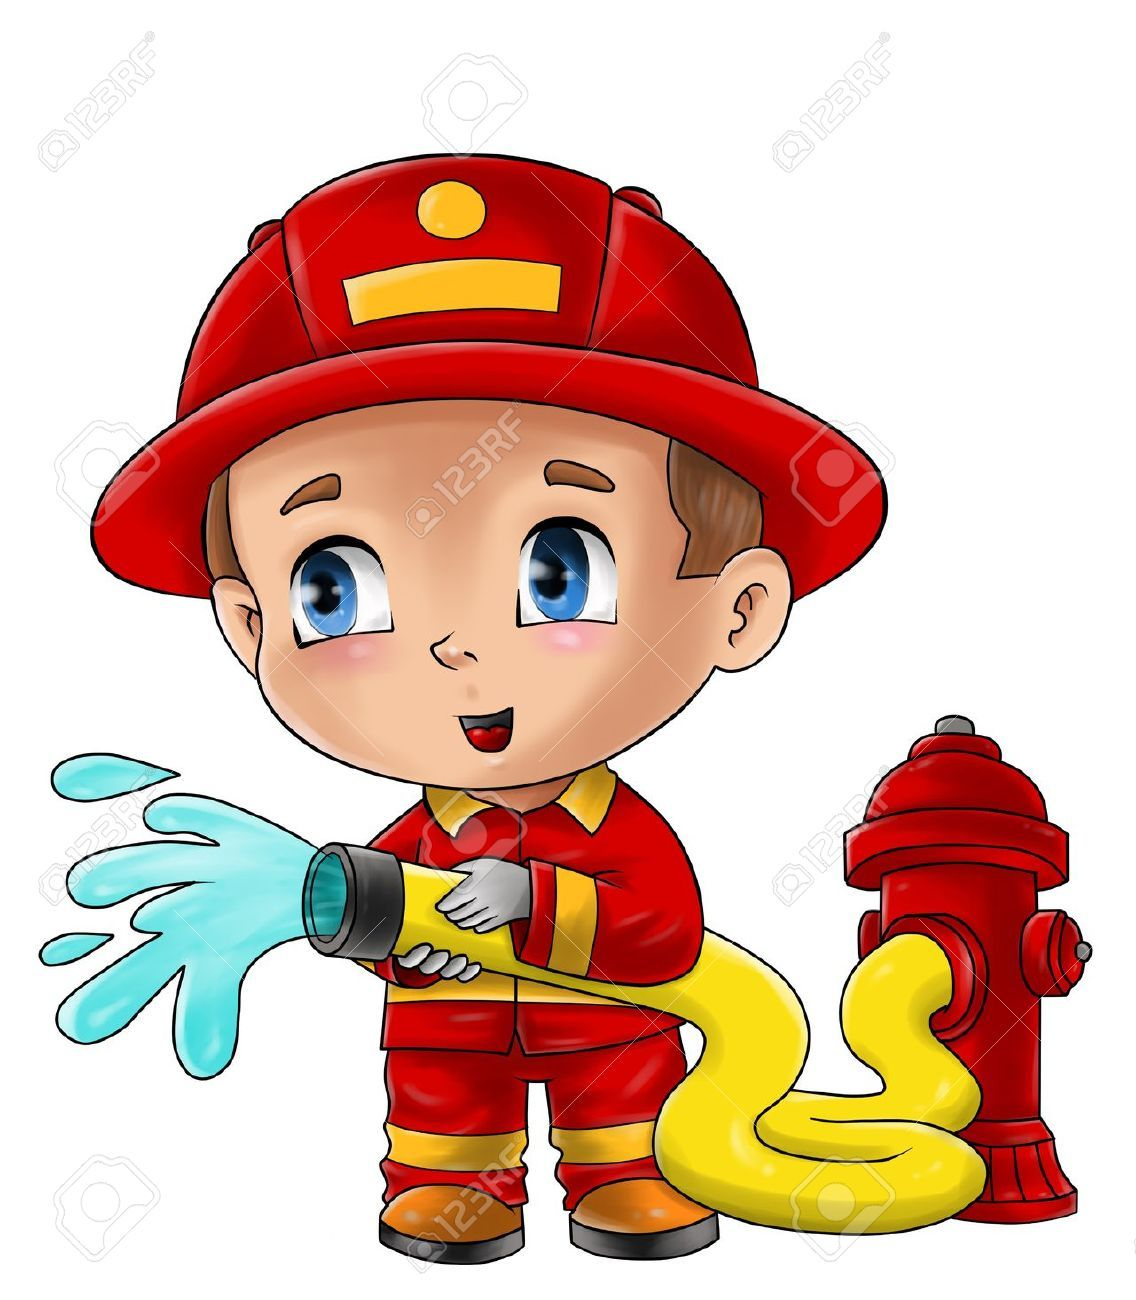 Fireman Hat Images, Stock Pictures, Royalty Free Fireman Hat.